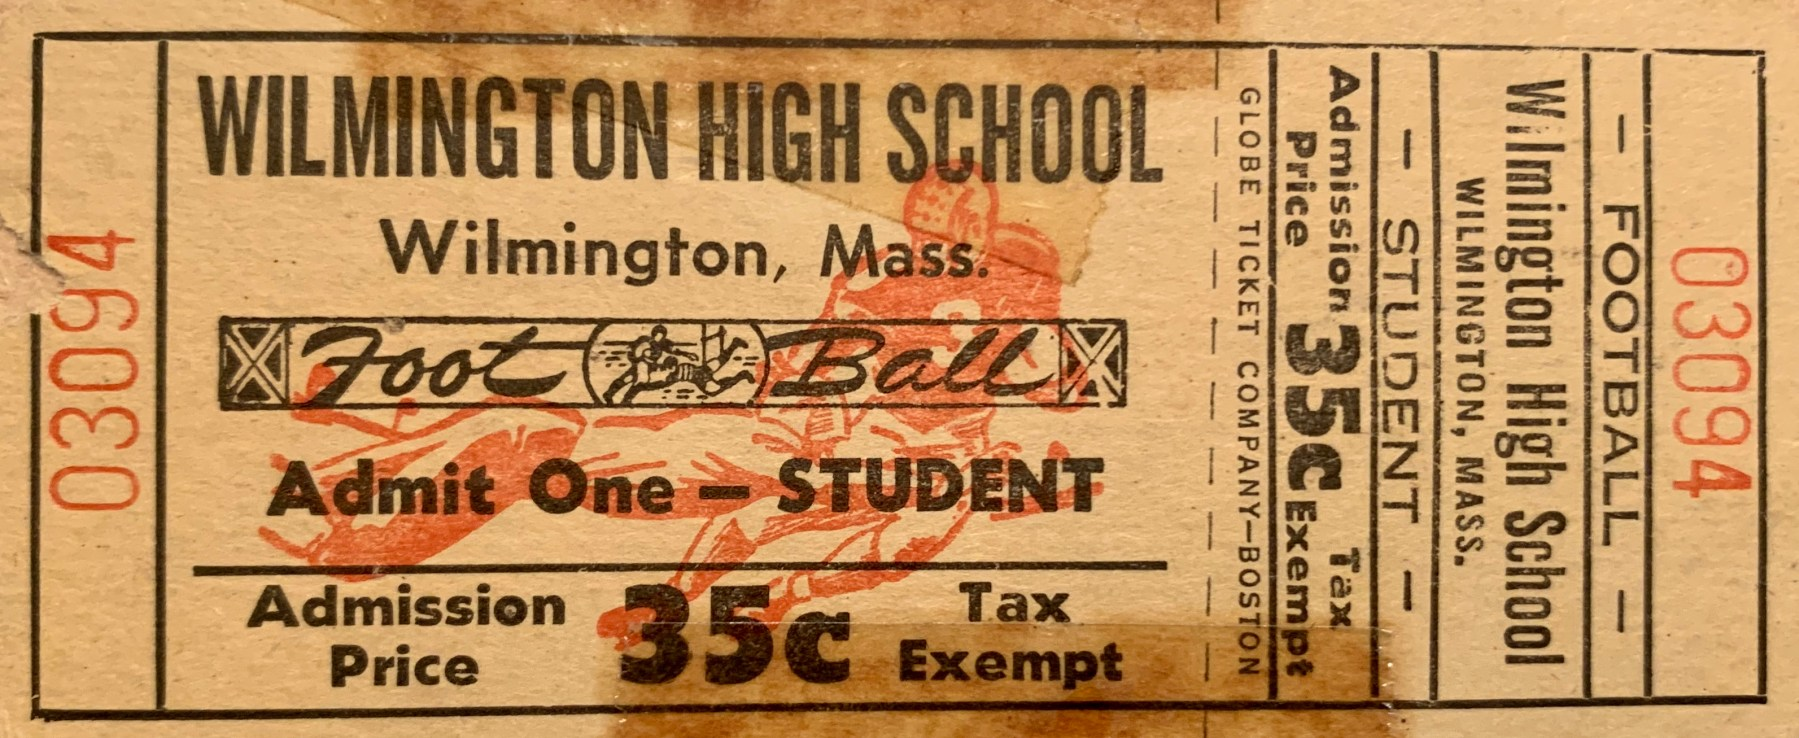 Wilmington High School football game ticket 1950s